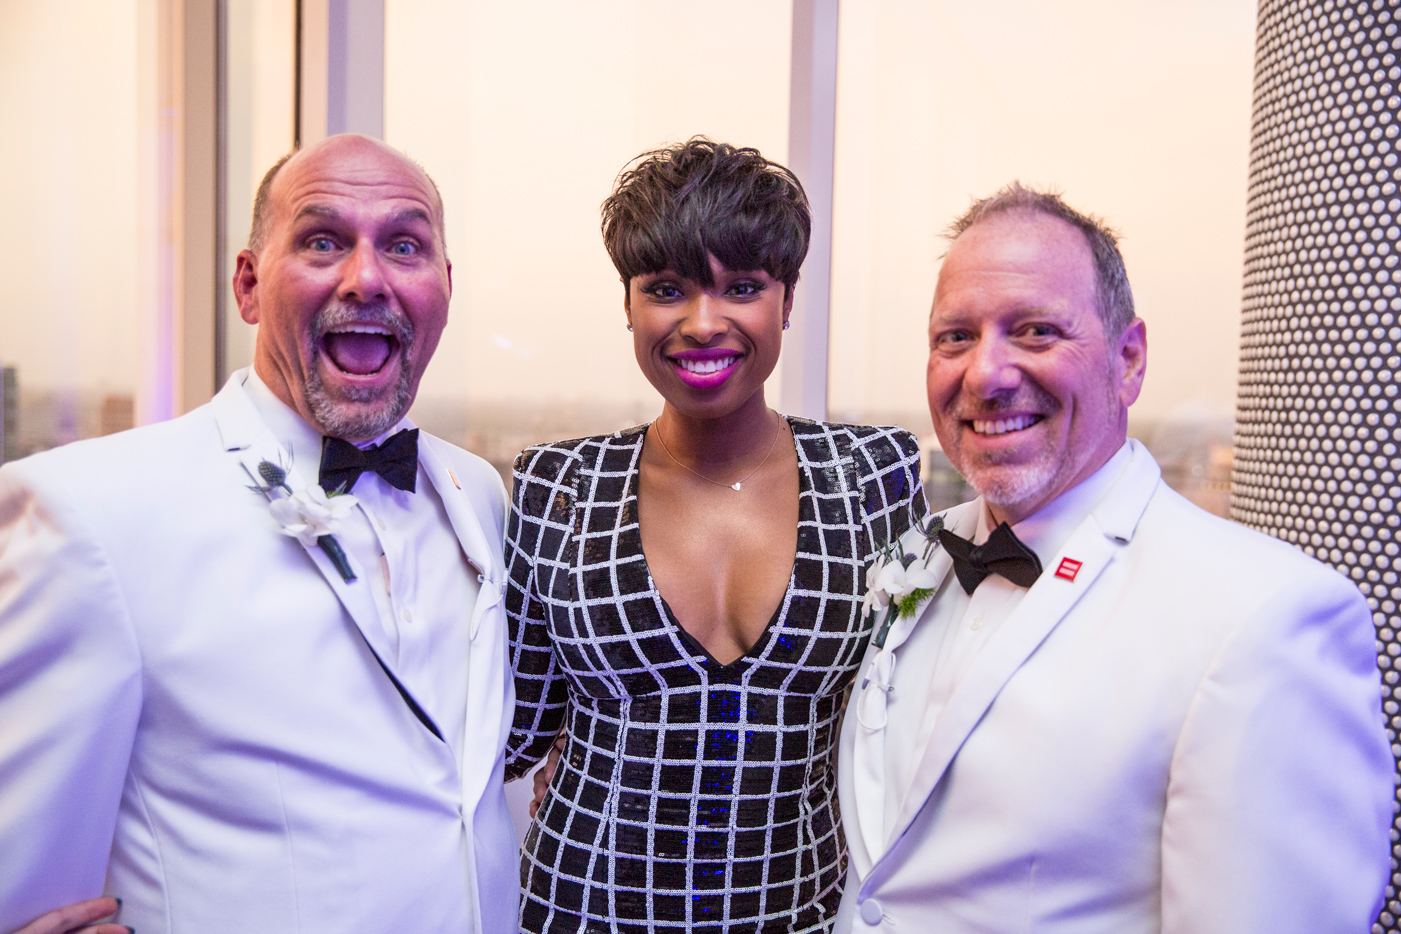 Jennifer Hudson Surprises Gay Couple With Wedding Song Rolling Stone